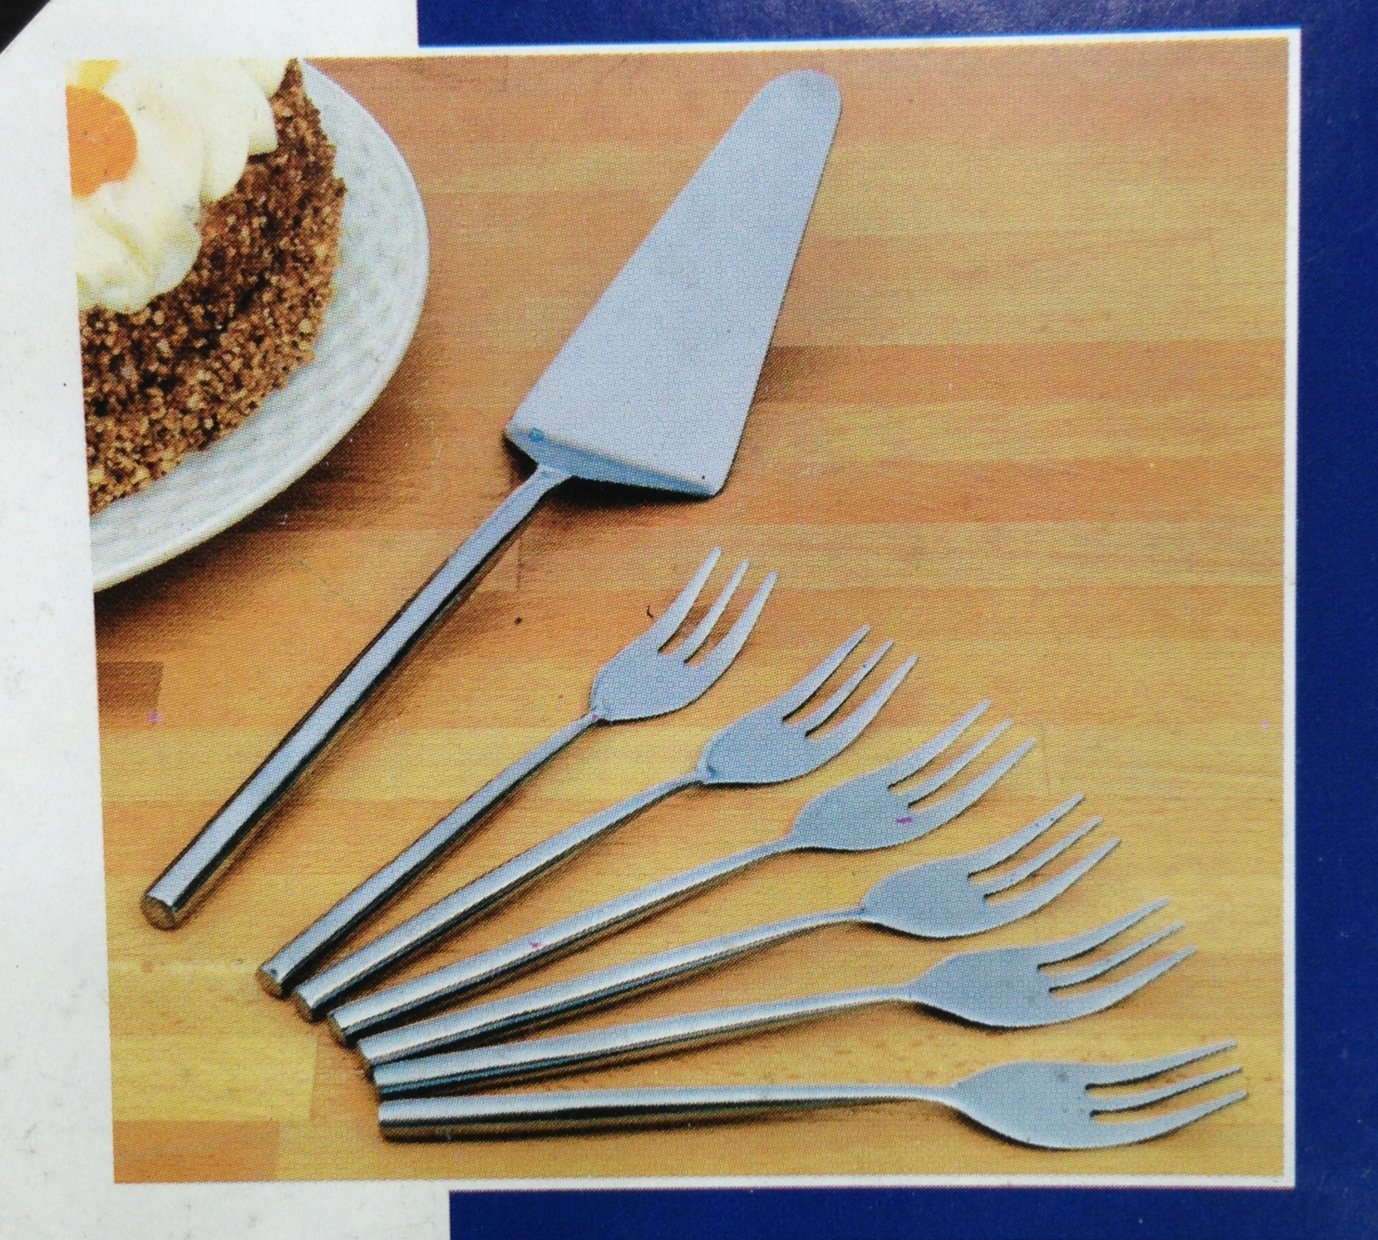 Cake Server and 6 Forks - High Quality Stainless Steel - Cake Cutlery Set